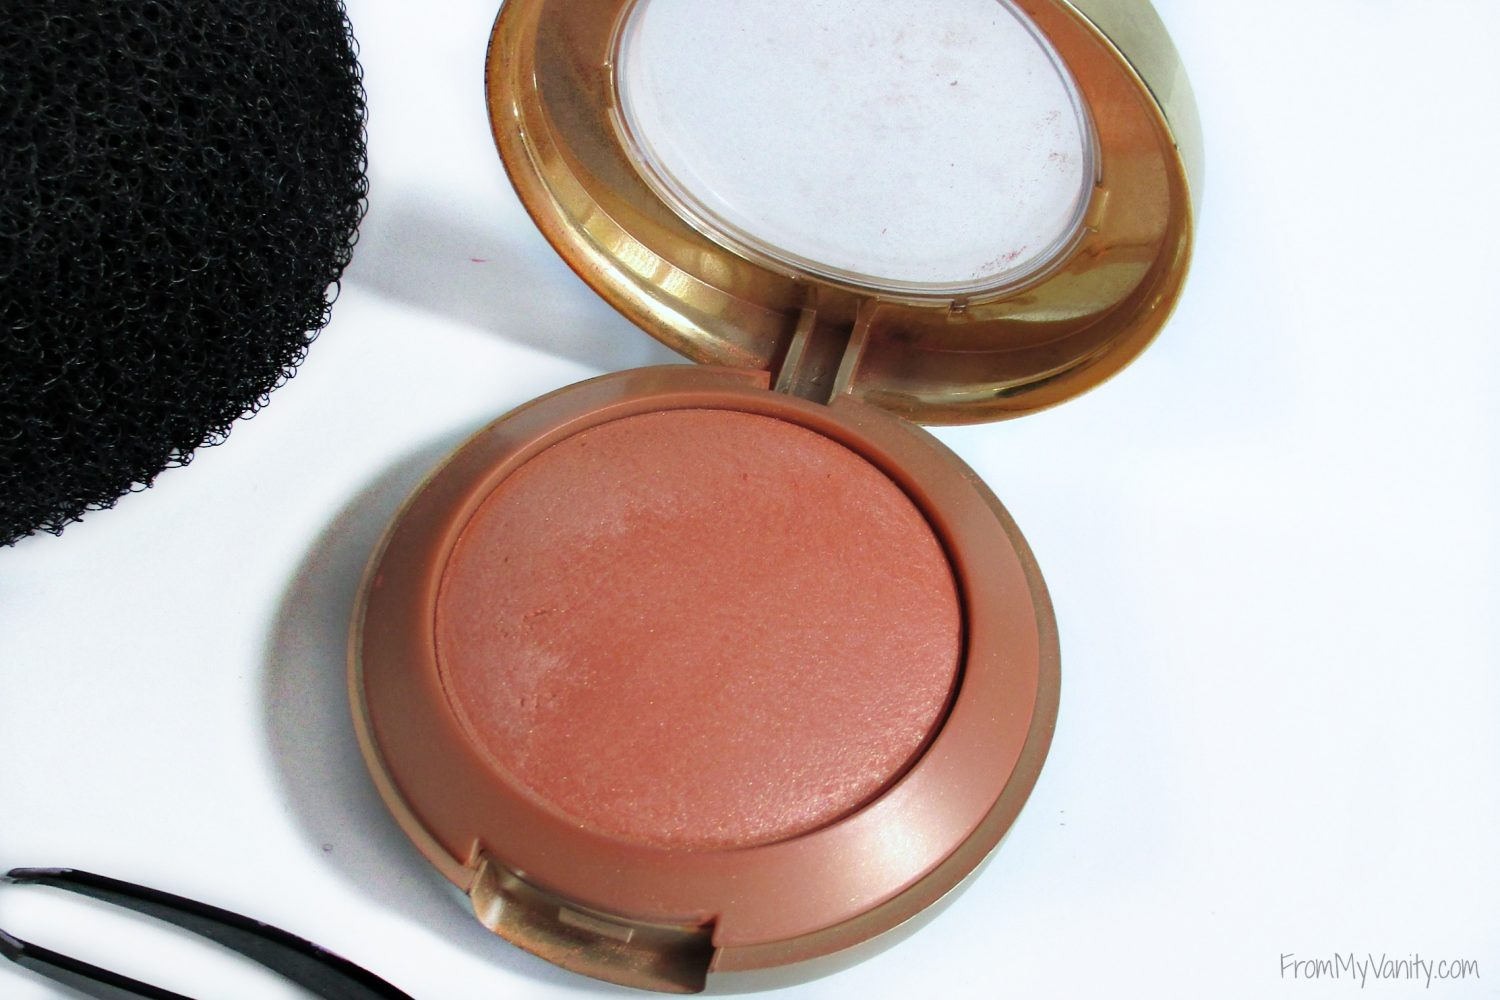 Monthly Beauty Favorites for September // Milani Baked Powder Blush in Luminoso 05 // FromMyVanity.com